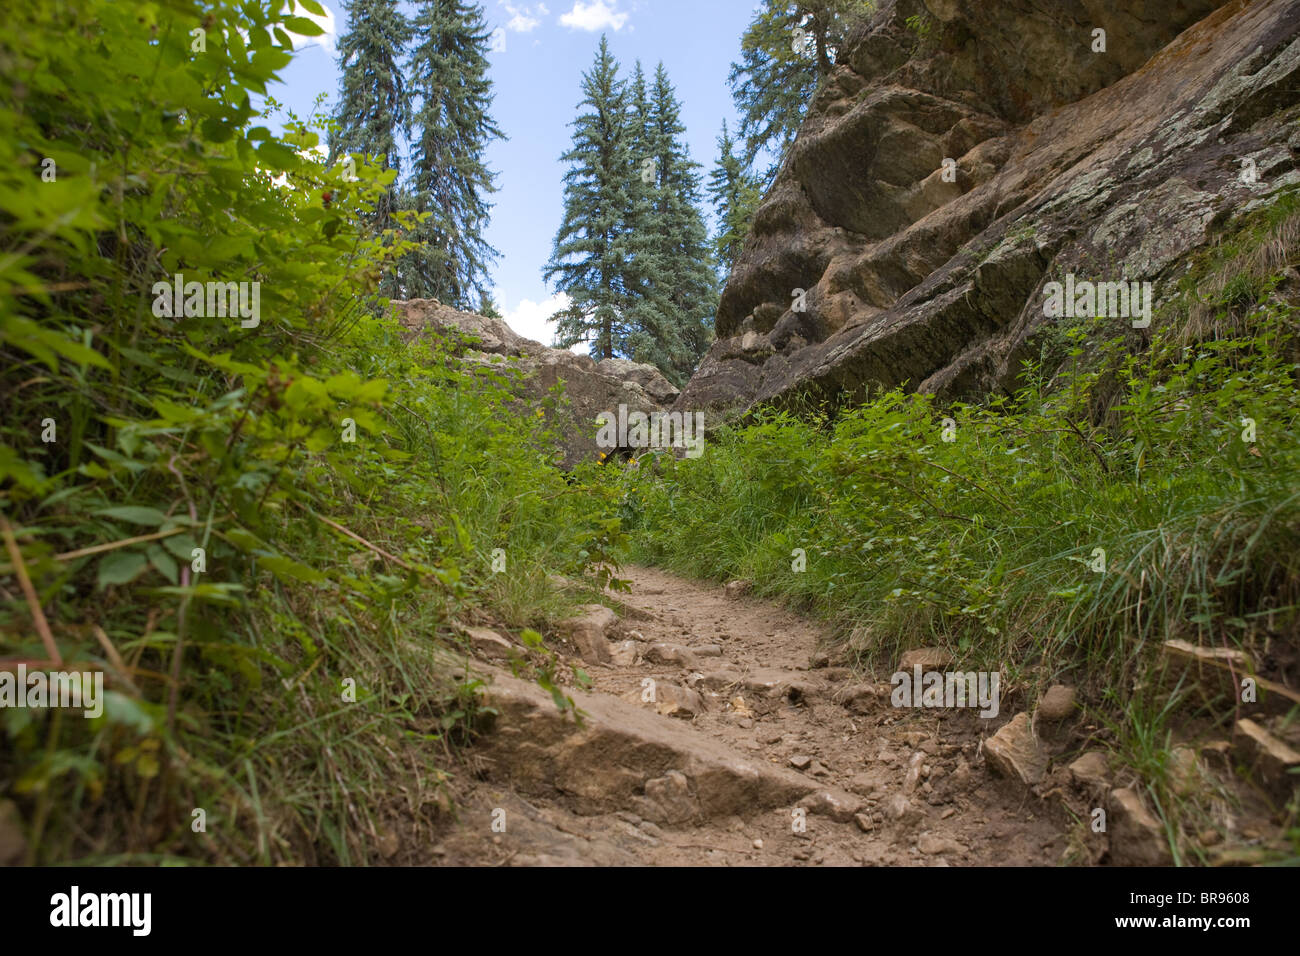 hiking trail, steep hill, Pagosa Springs, Colorado, United States - Stock Image